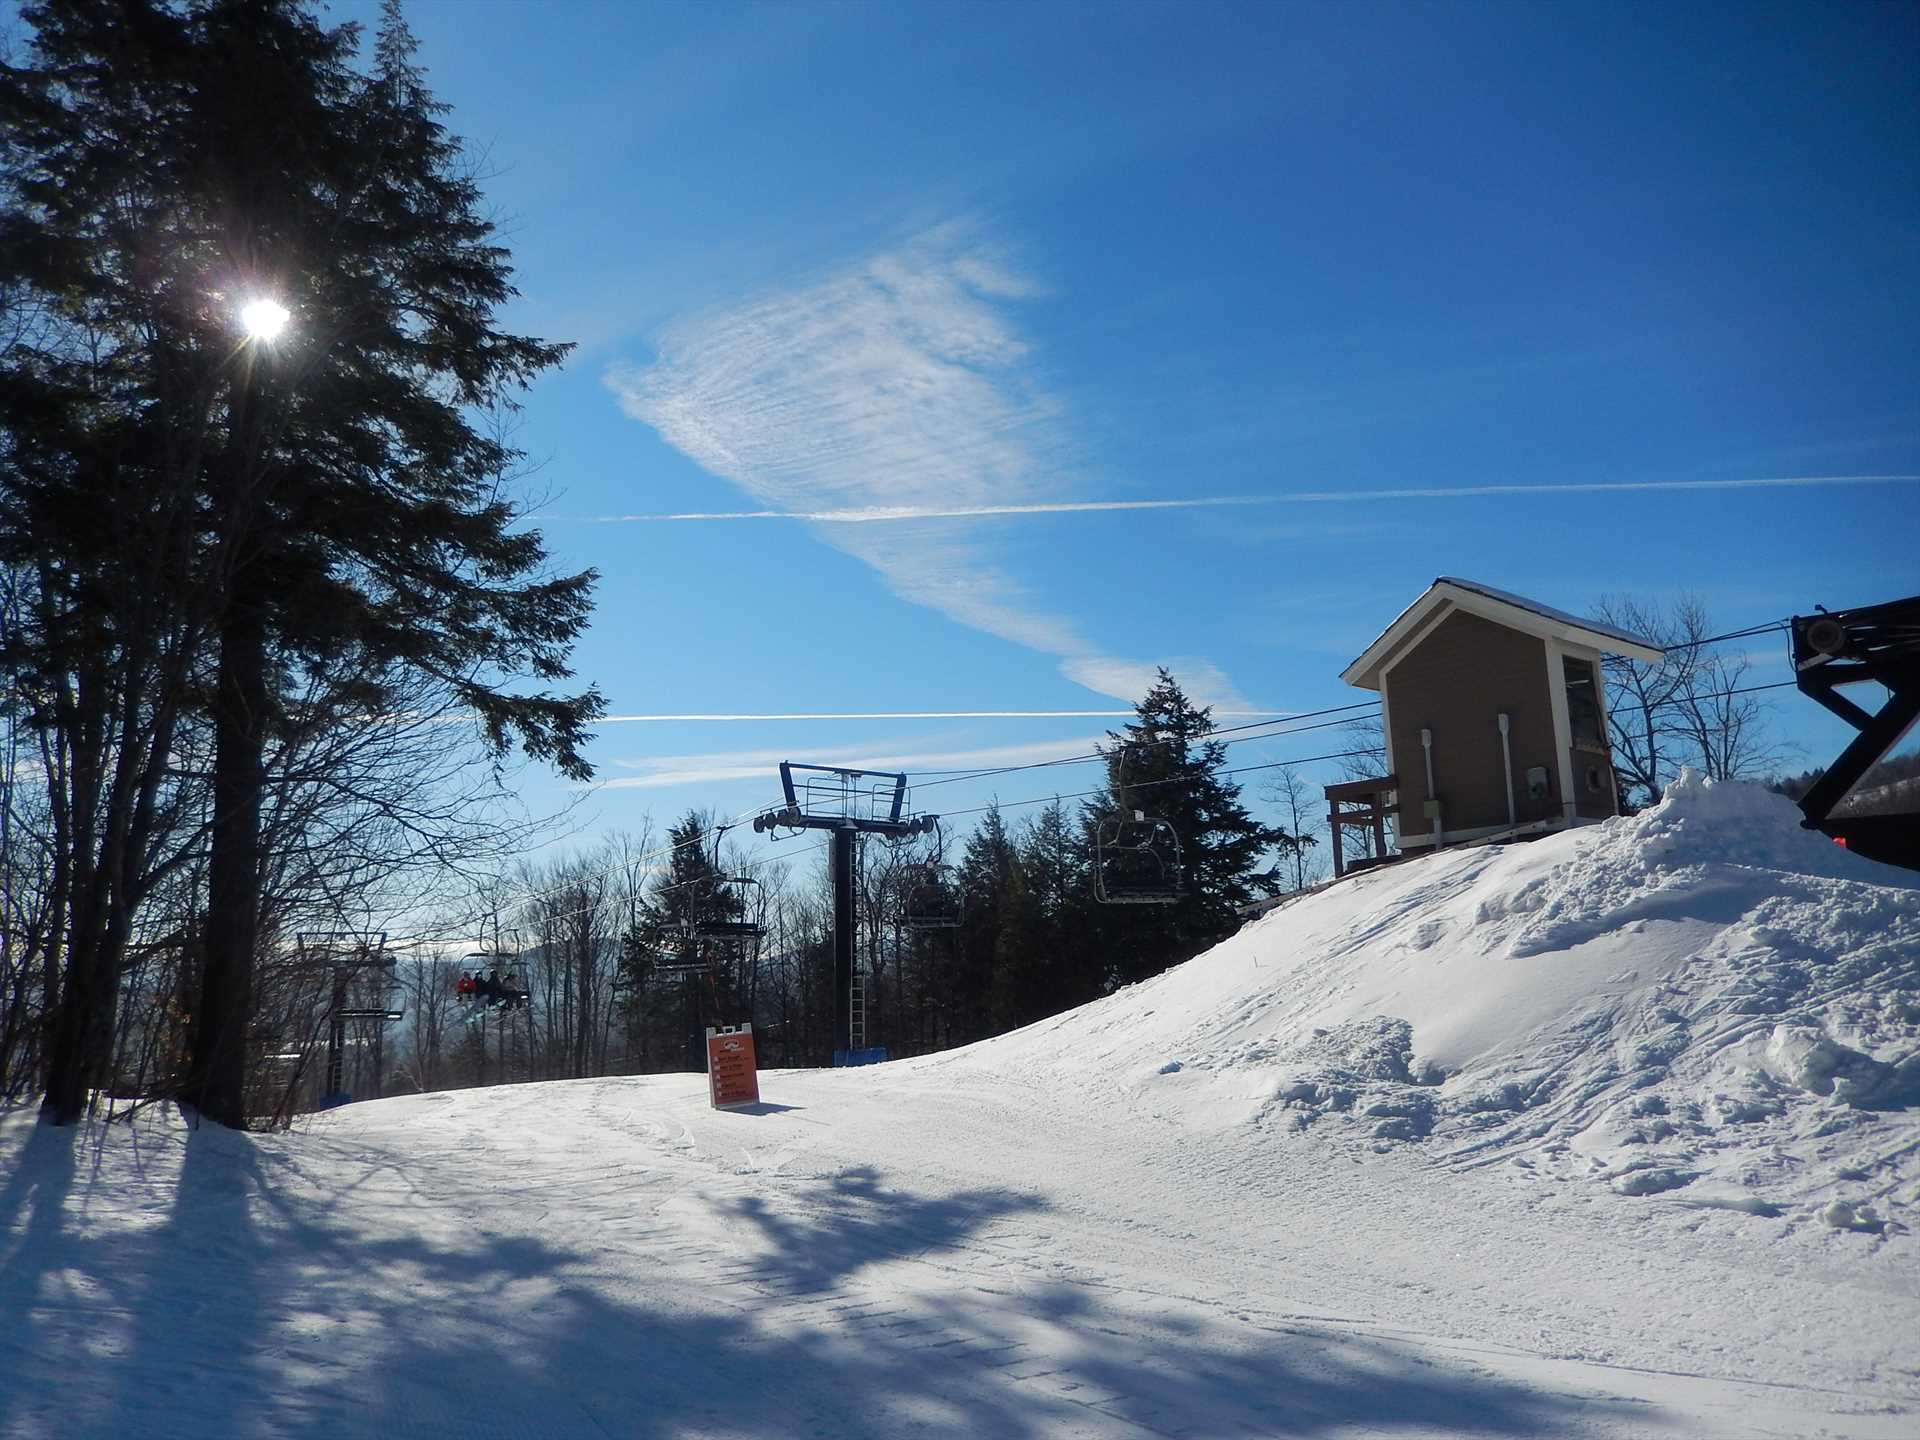 State of the art snowmaking